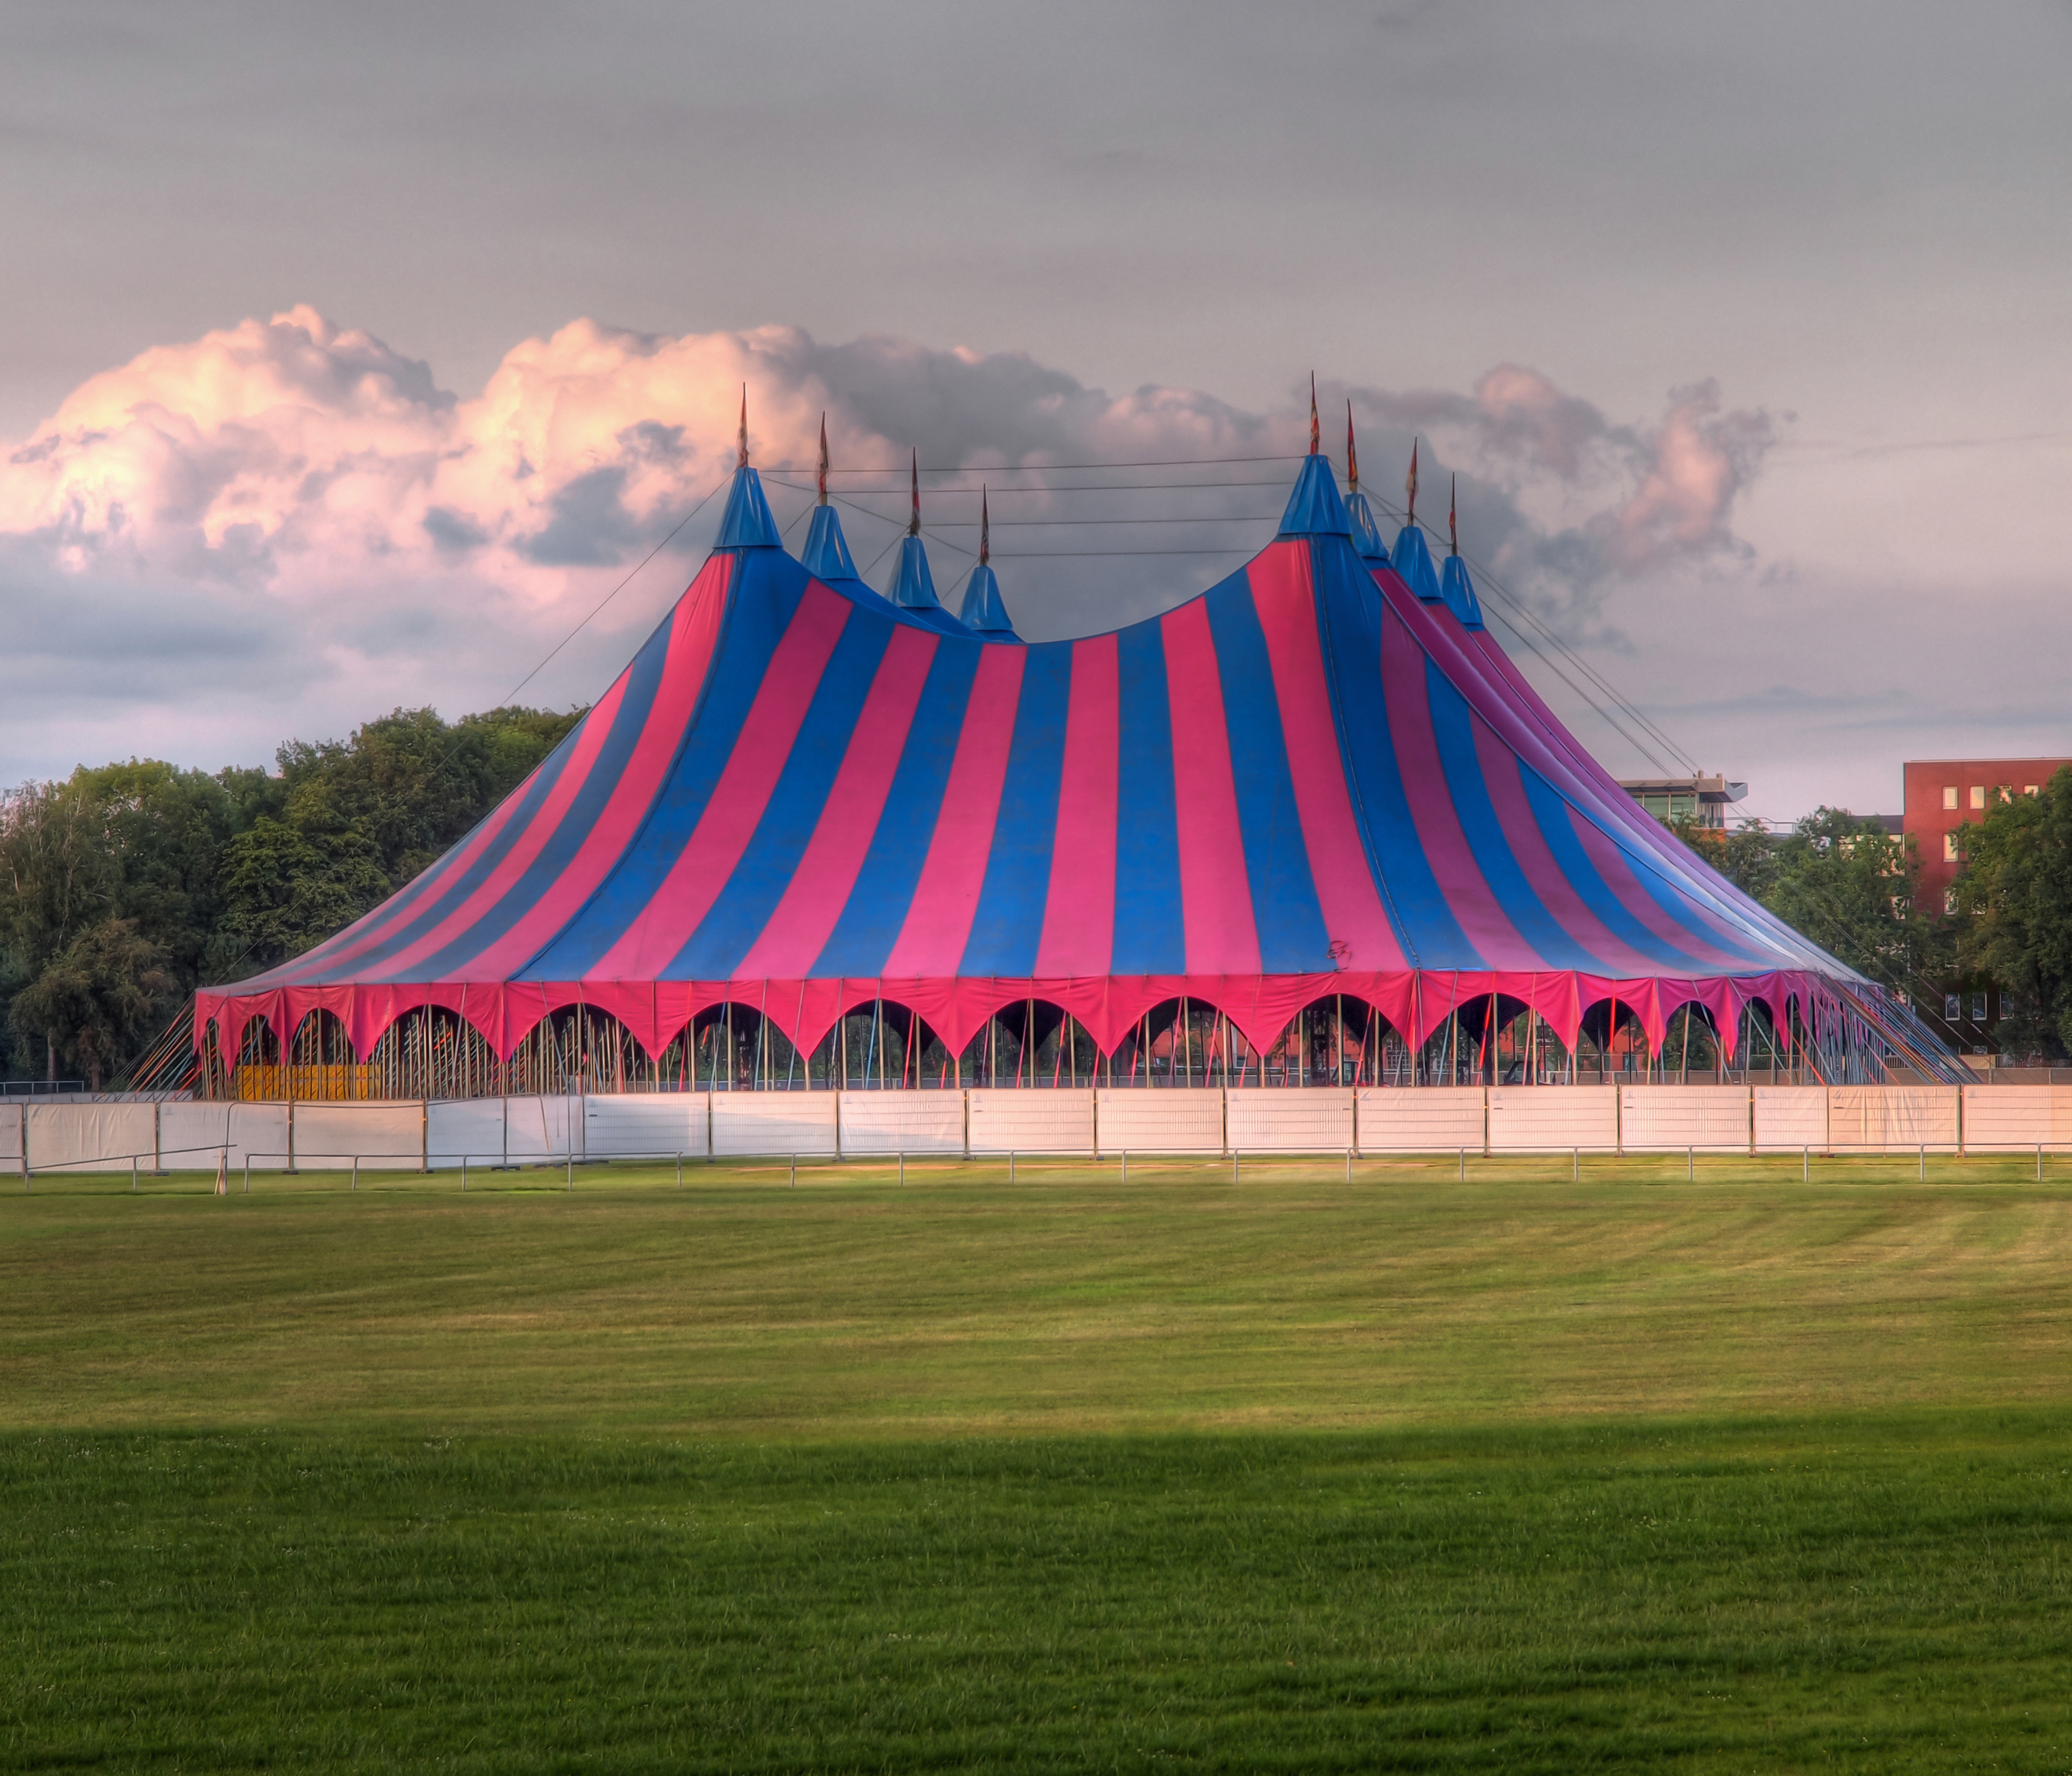 ... the Big Tent of Paganism. photo courtesy of shutterstock & The Big Tent of Paganism